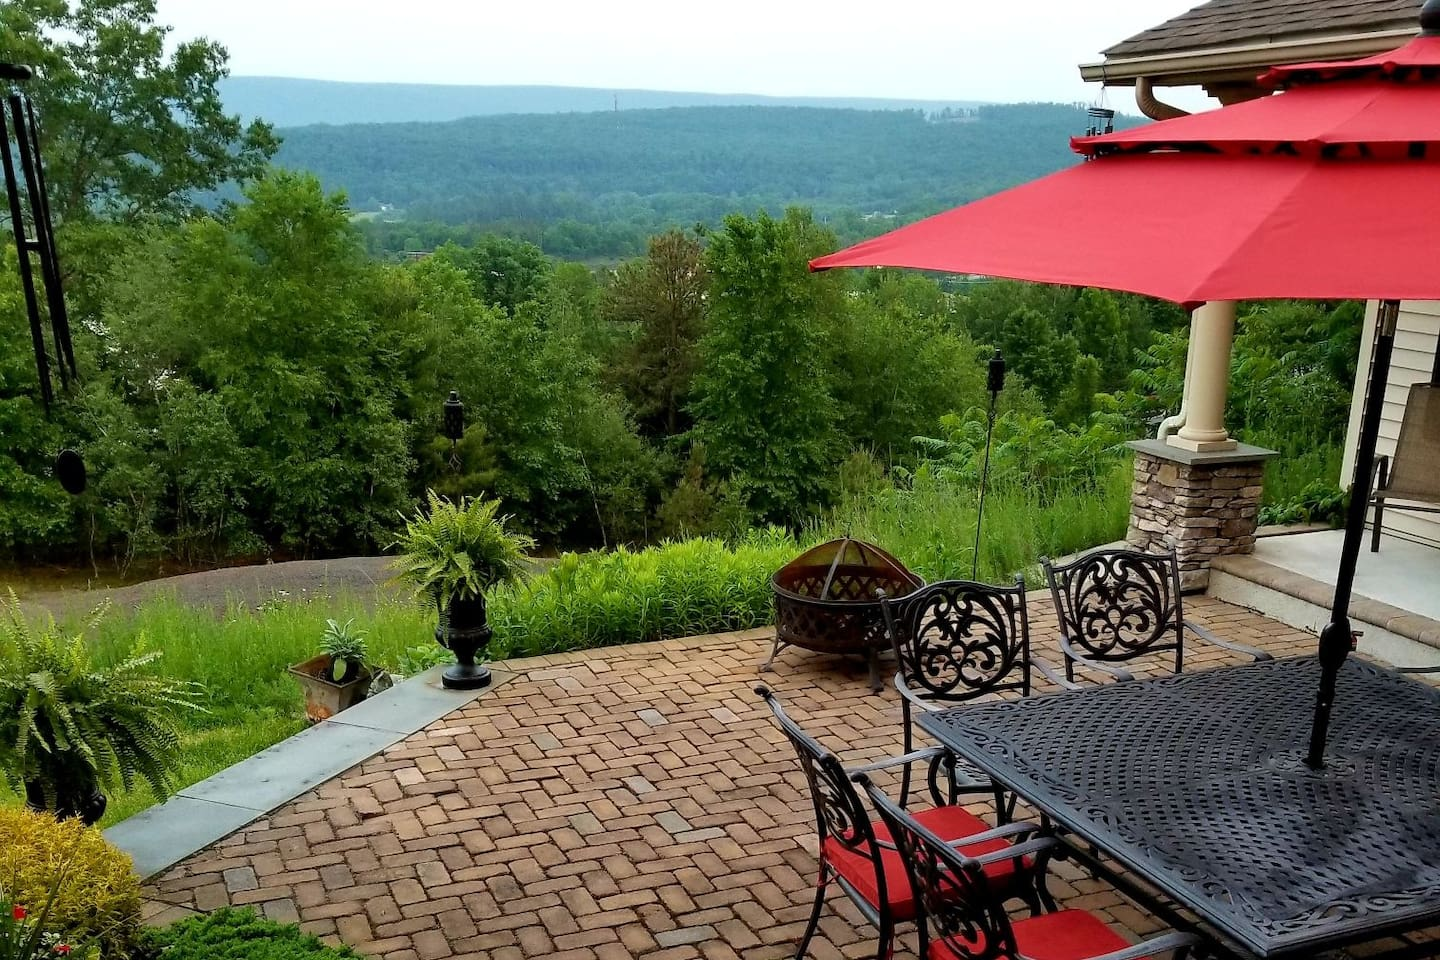 See the Delaware Water Gap, The Cherry Valley and the Wind Gap from your patio view